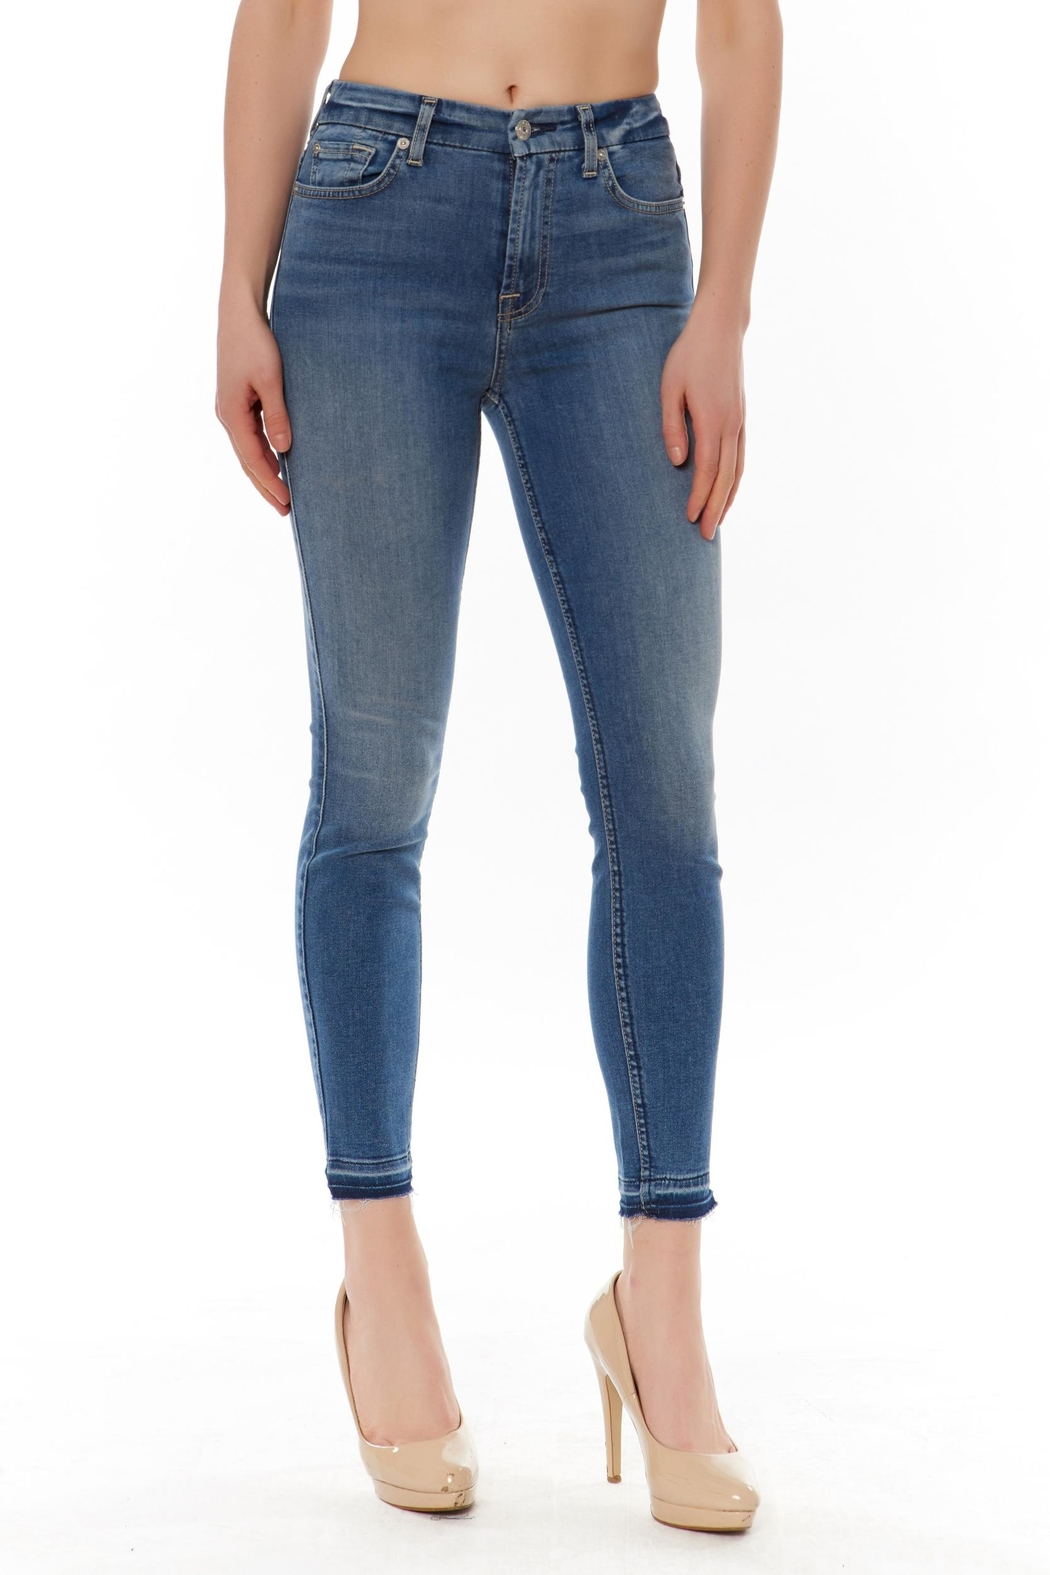 7 For all Mankind High Waist Jean - Front Cropped Image